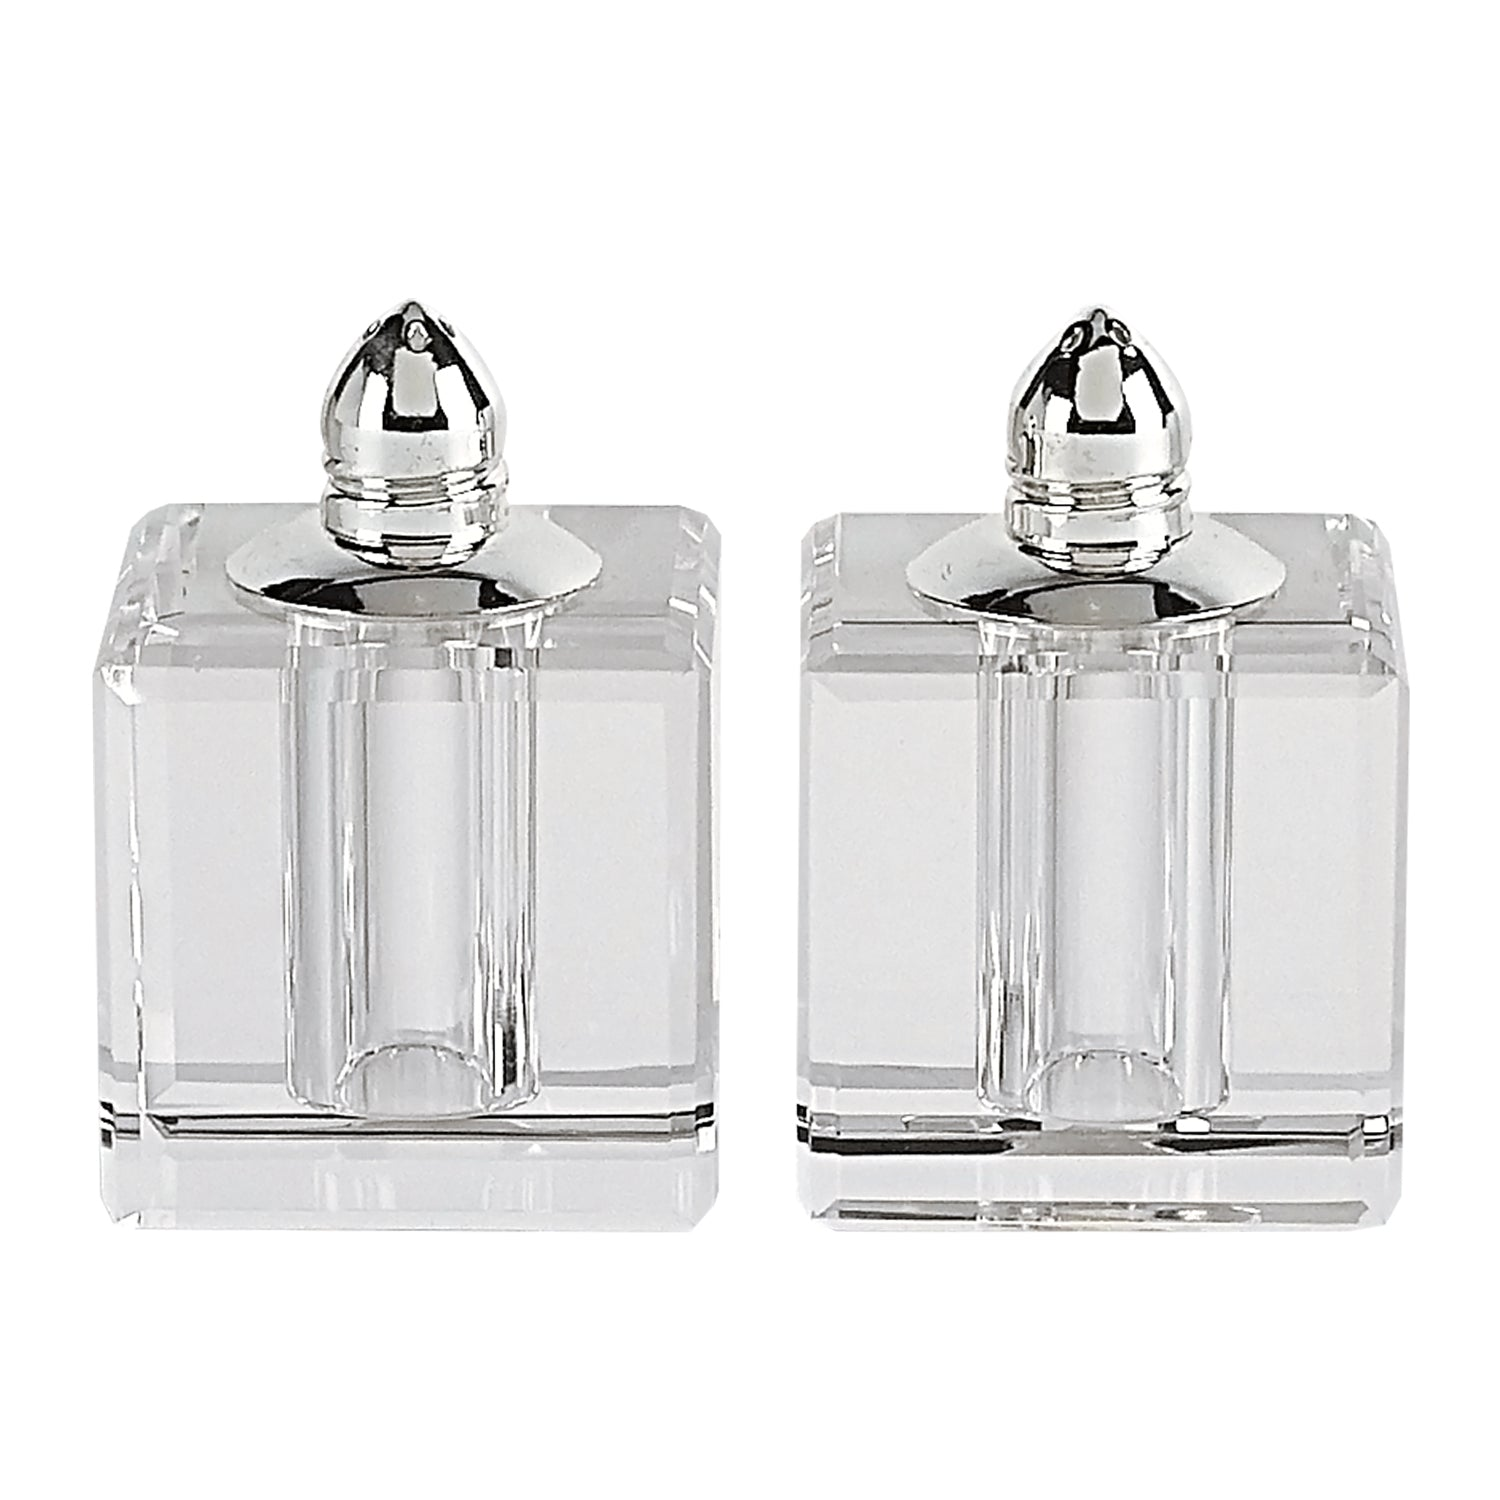 Handcrafted Optical Crystal and Silver Square Size Salt & Pepper Shakers